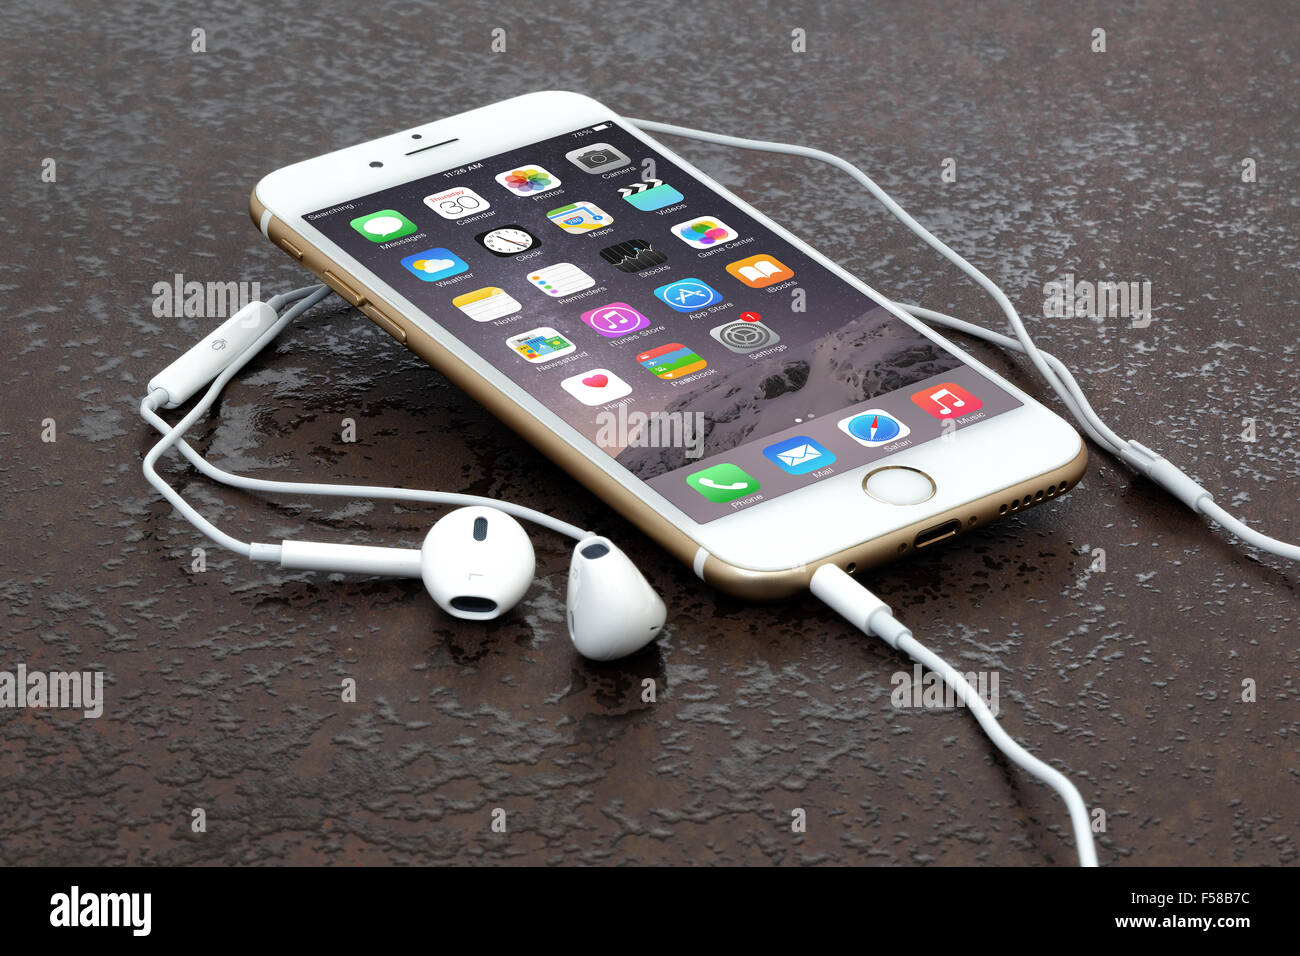 Golden iPhone 6 on stone table - Stock Image